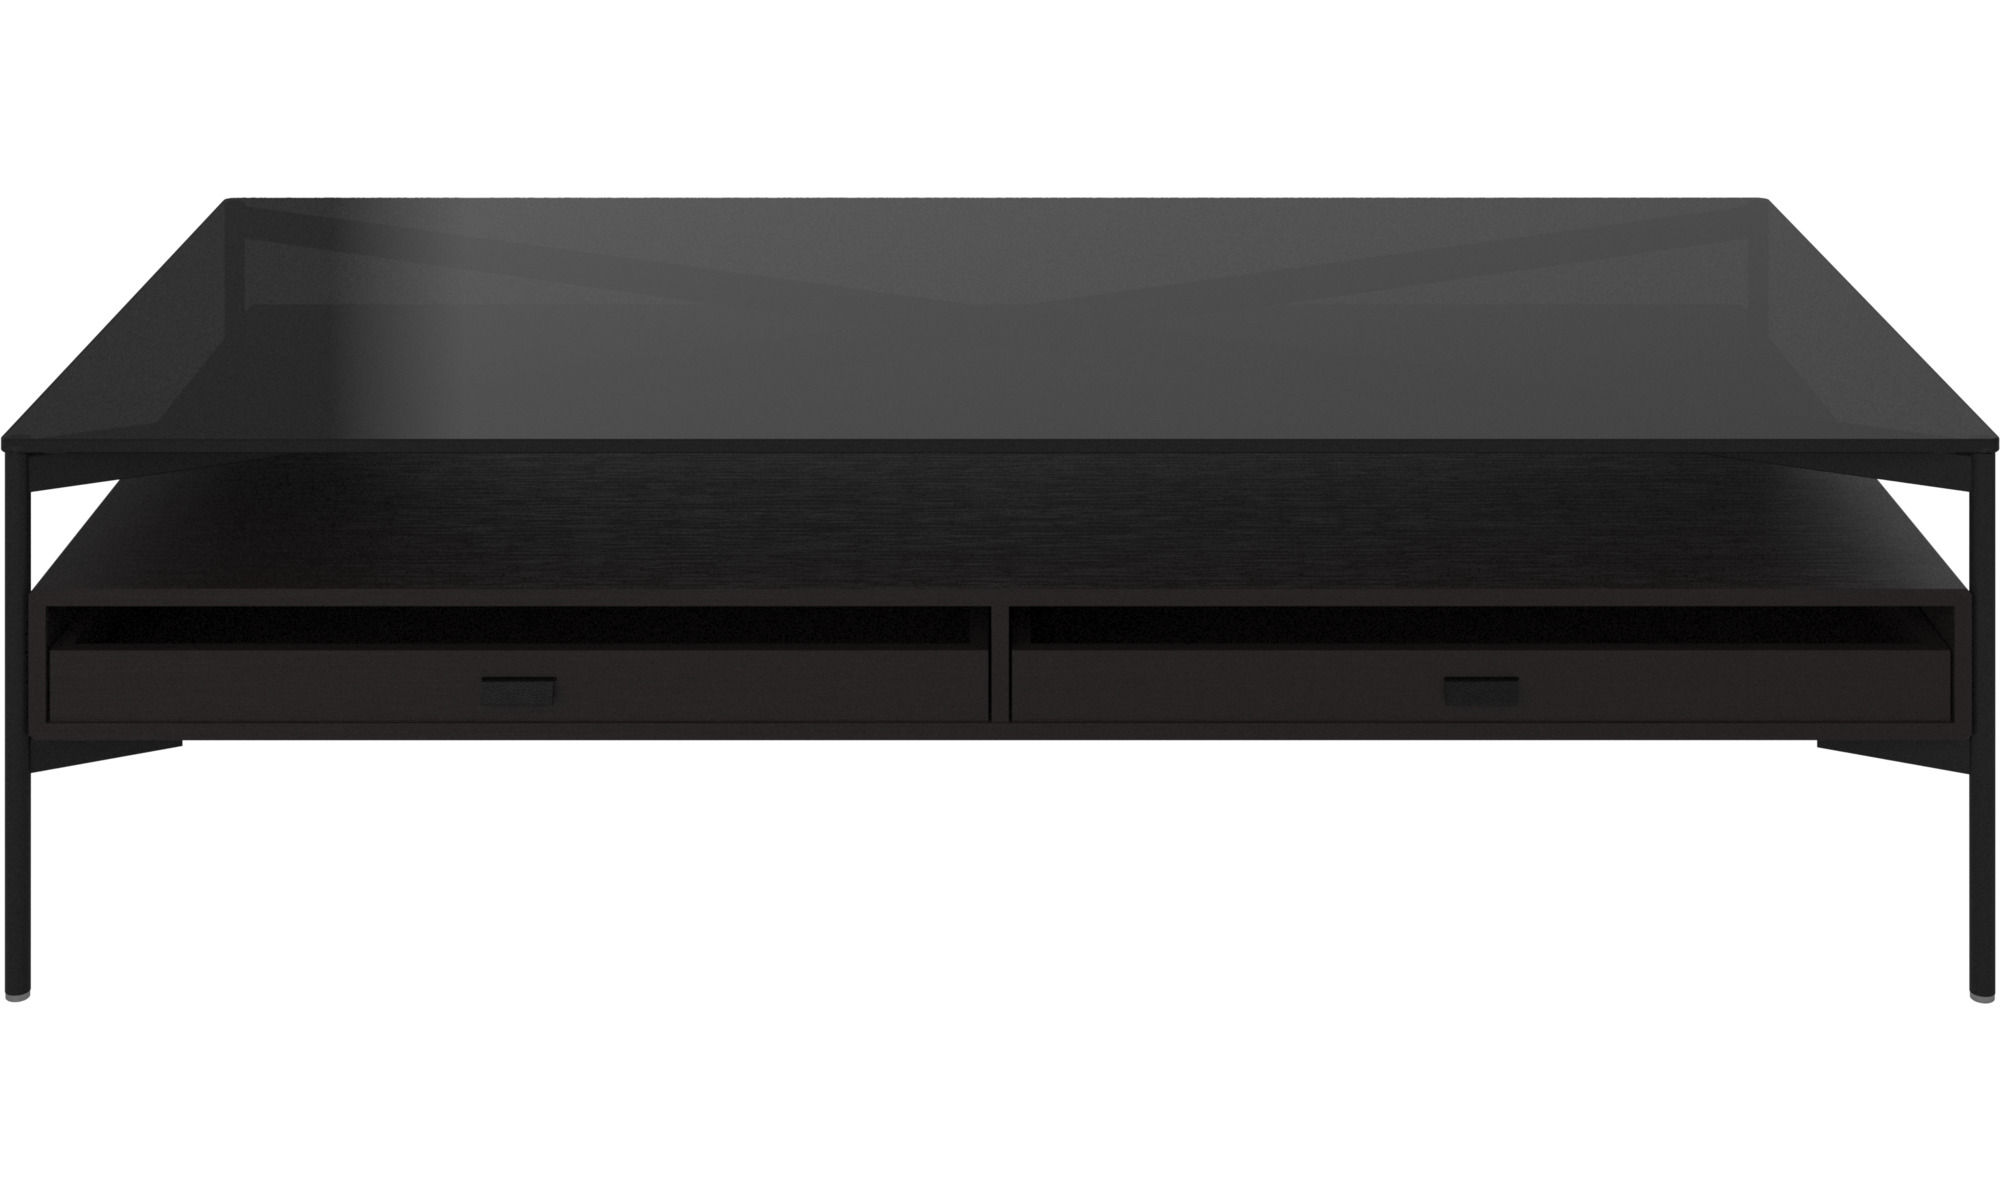 - Coffee Tables - Los Angeles Coffee Table With Storage - Drawers